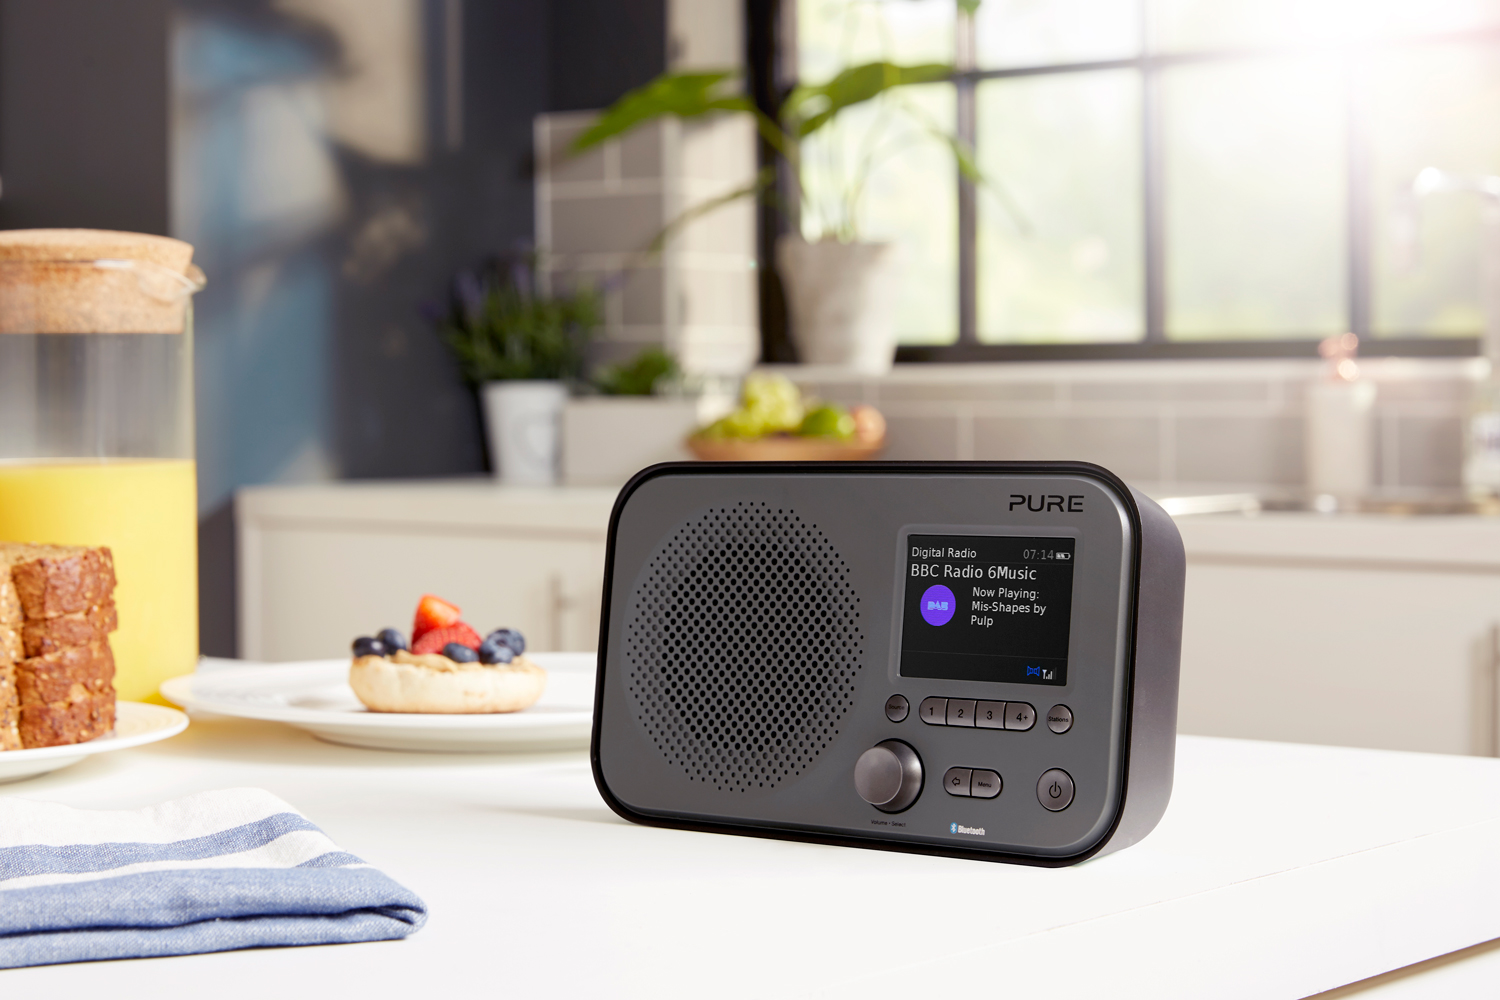 Top 10 Best Budget DAB Radio 2020 | Best Reviewer